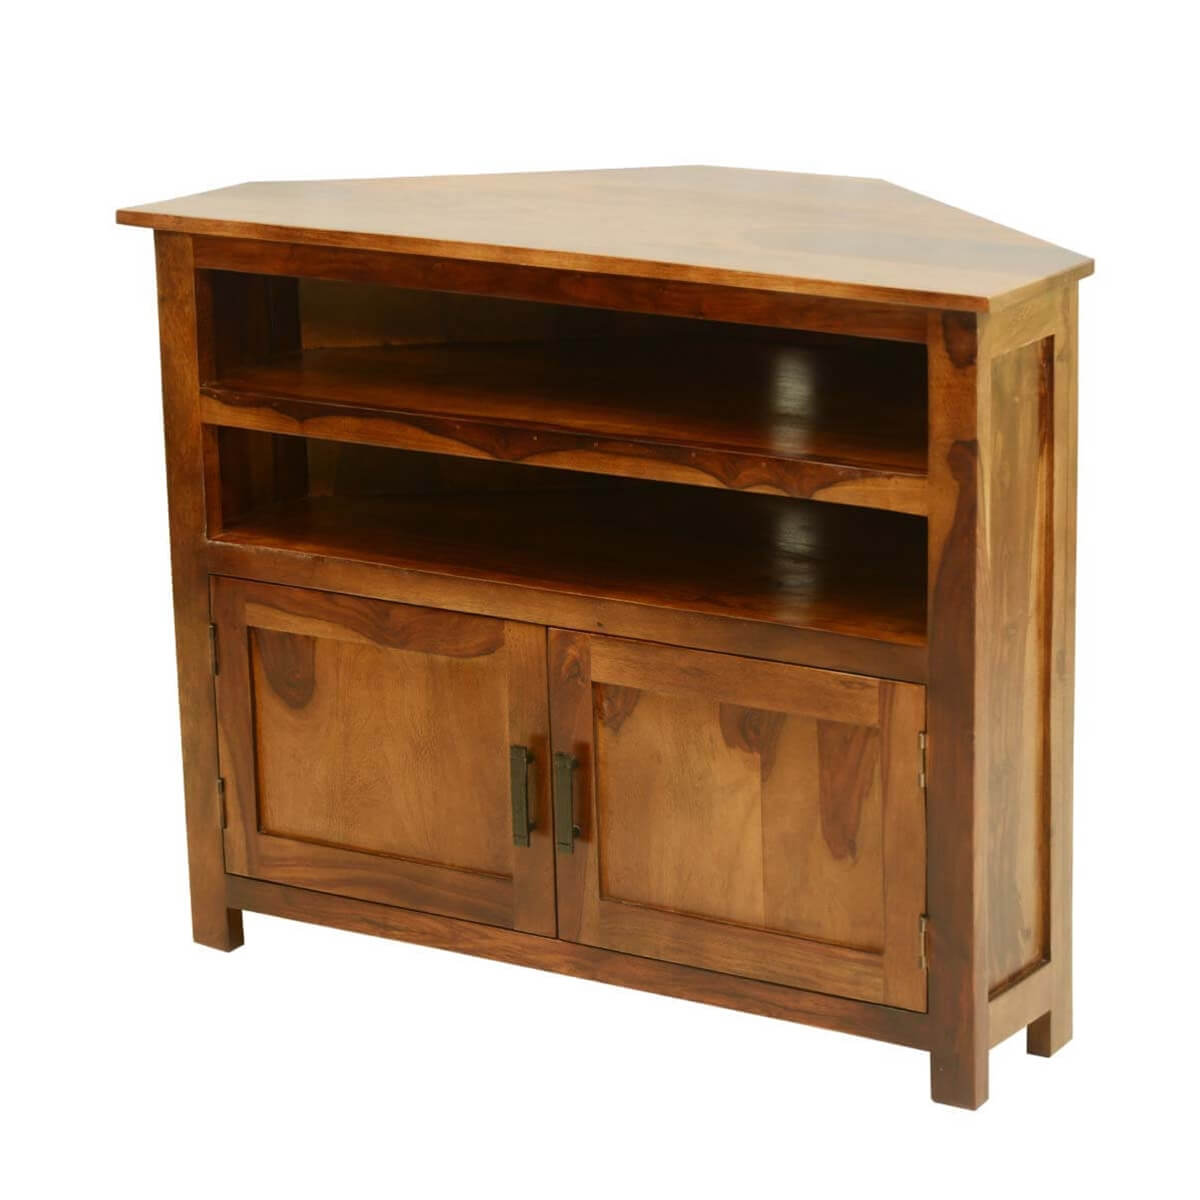 Farmhouse Corner Tv Stand Plans Farmhouse Solid Wood Corner Tv Media Stand